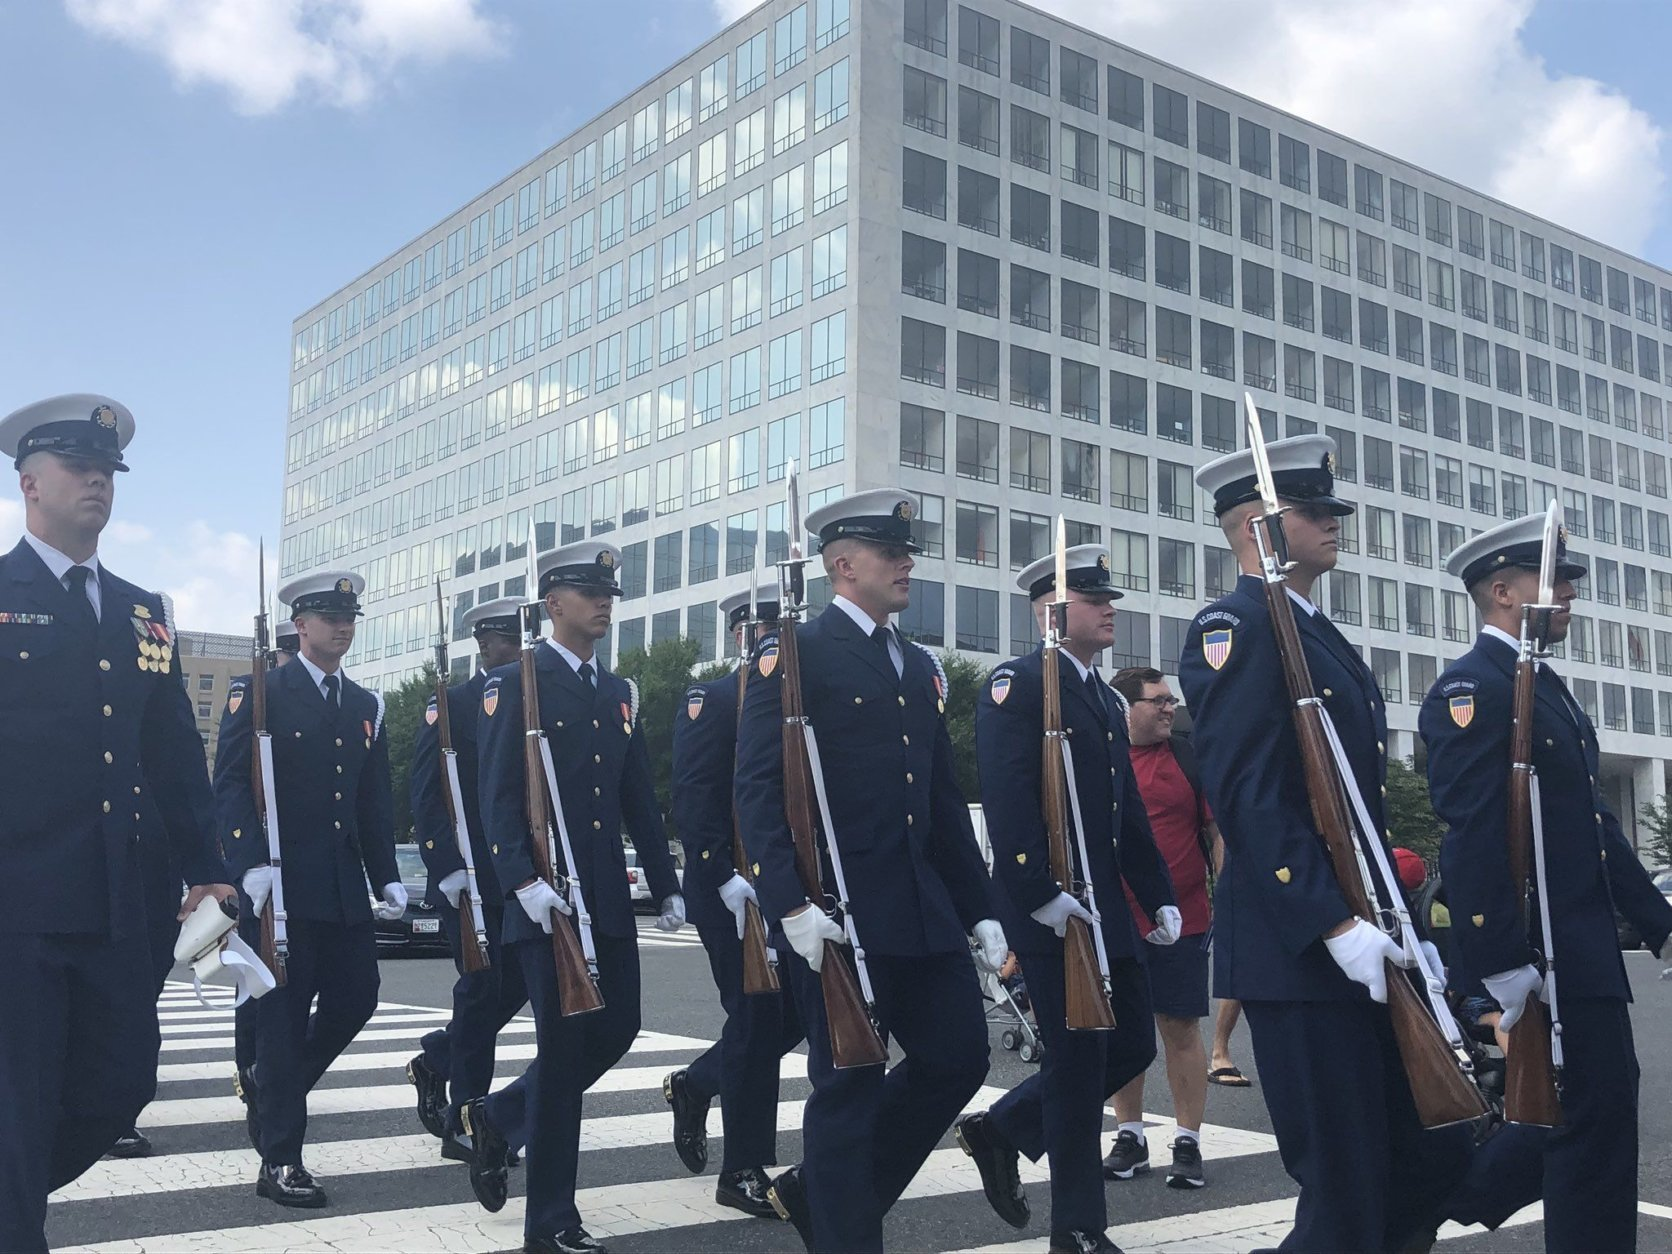 A view of the parade in D.C. on Fourth of July 2018. (WTOP/Melissa Howell)